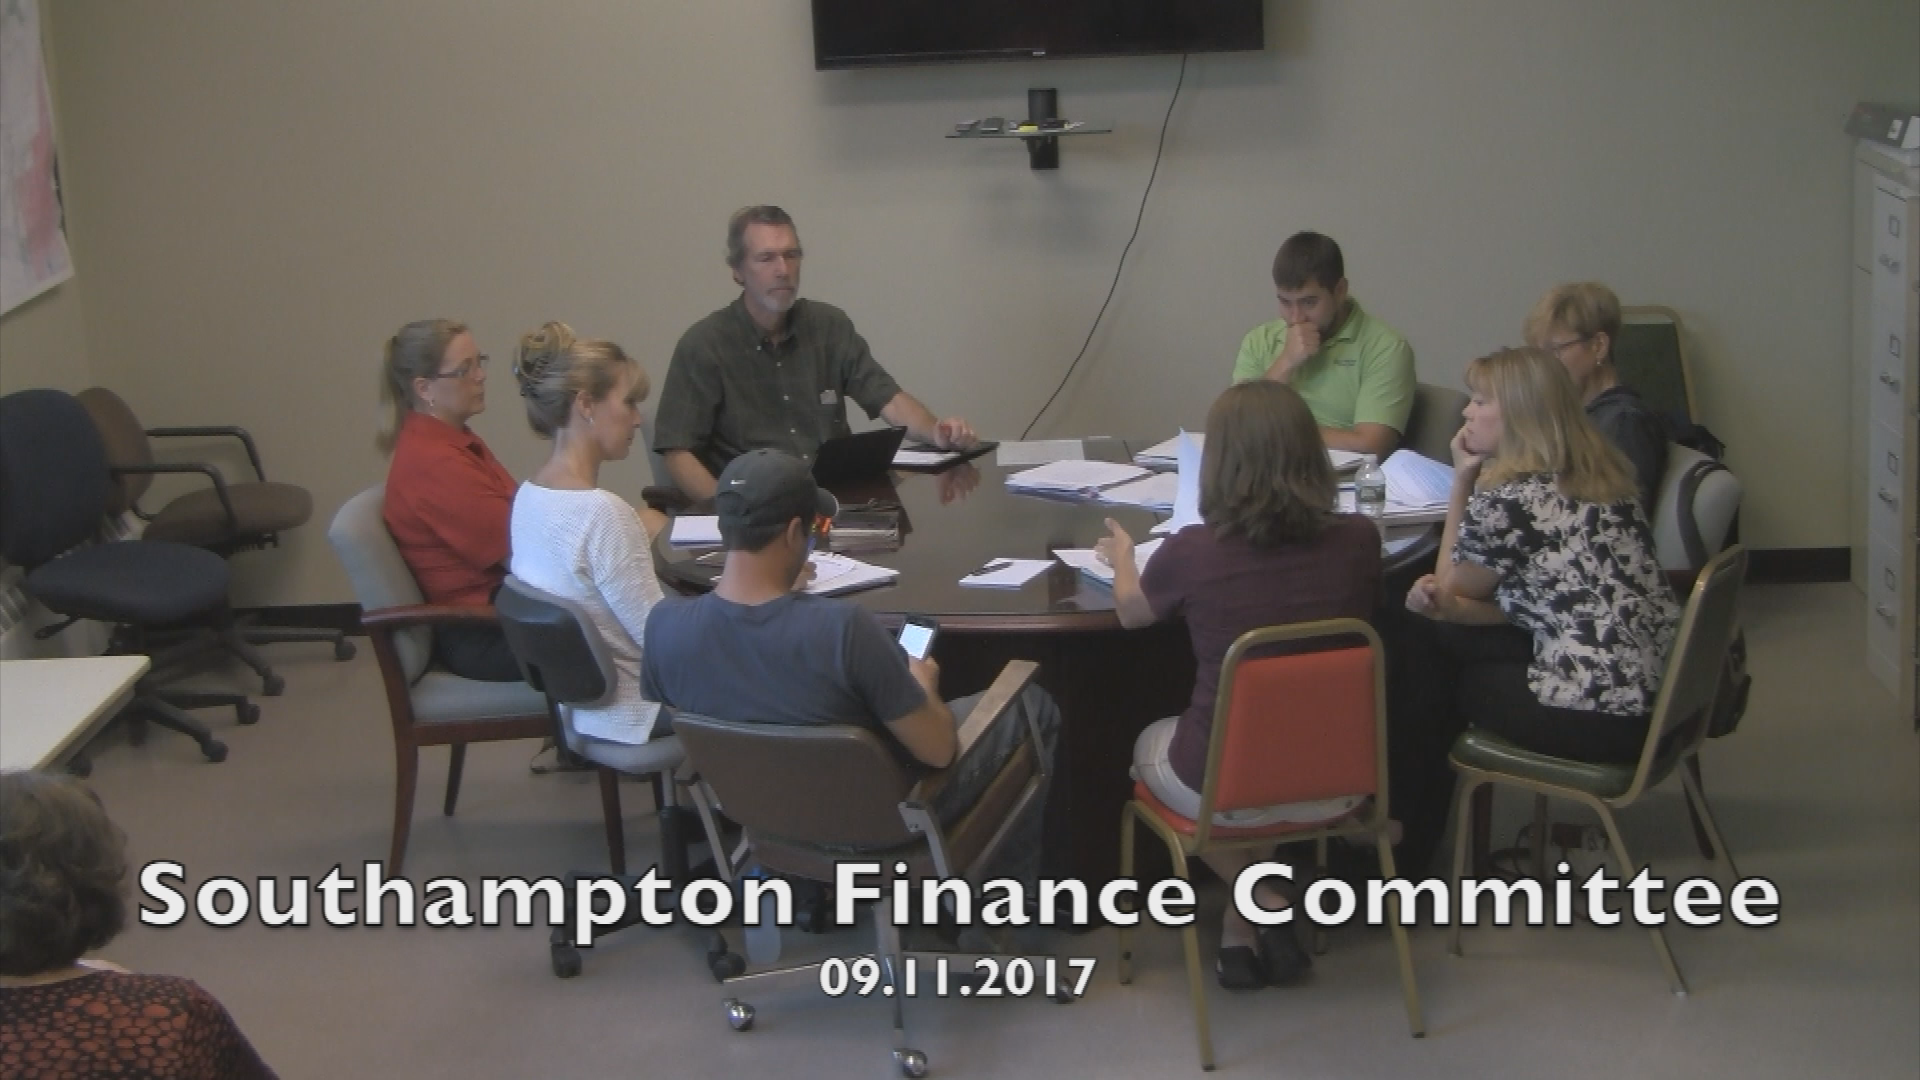 Southampton Finance Committee 09.11.17